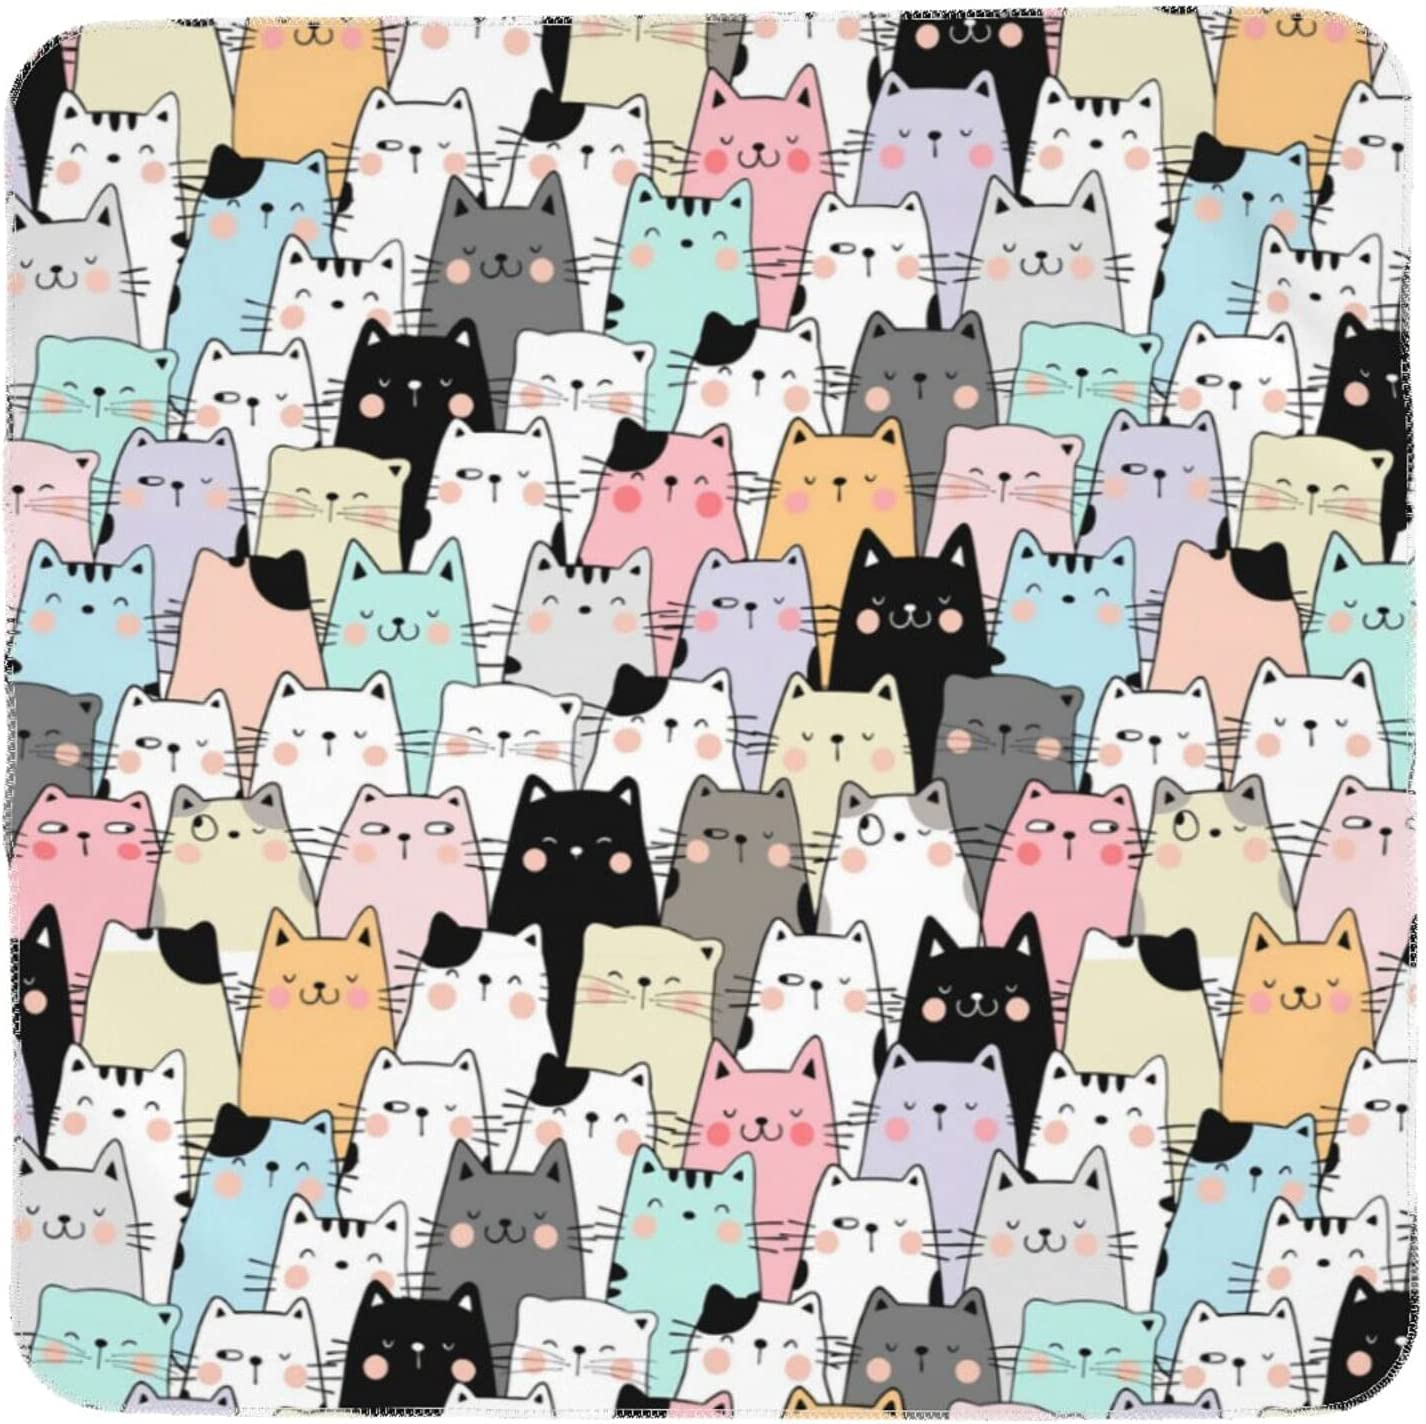 Cute Cats Baby Blanket for Cheap bargain Girls Rare Newborn Blanke and Boys Swaddle